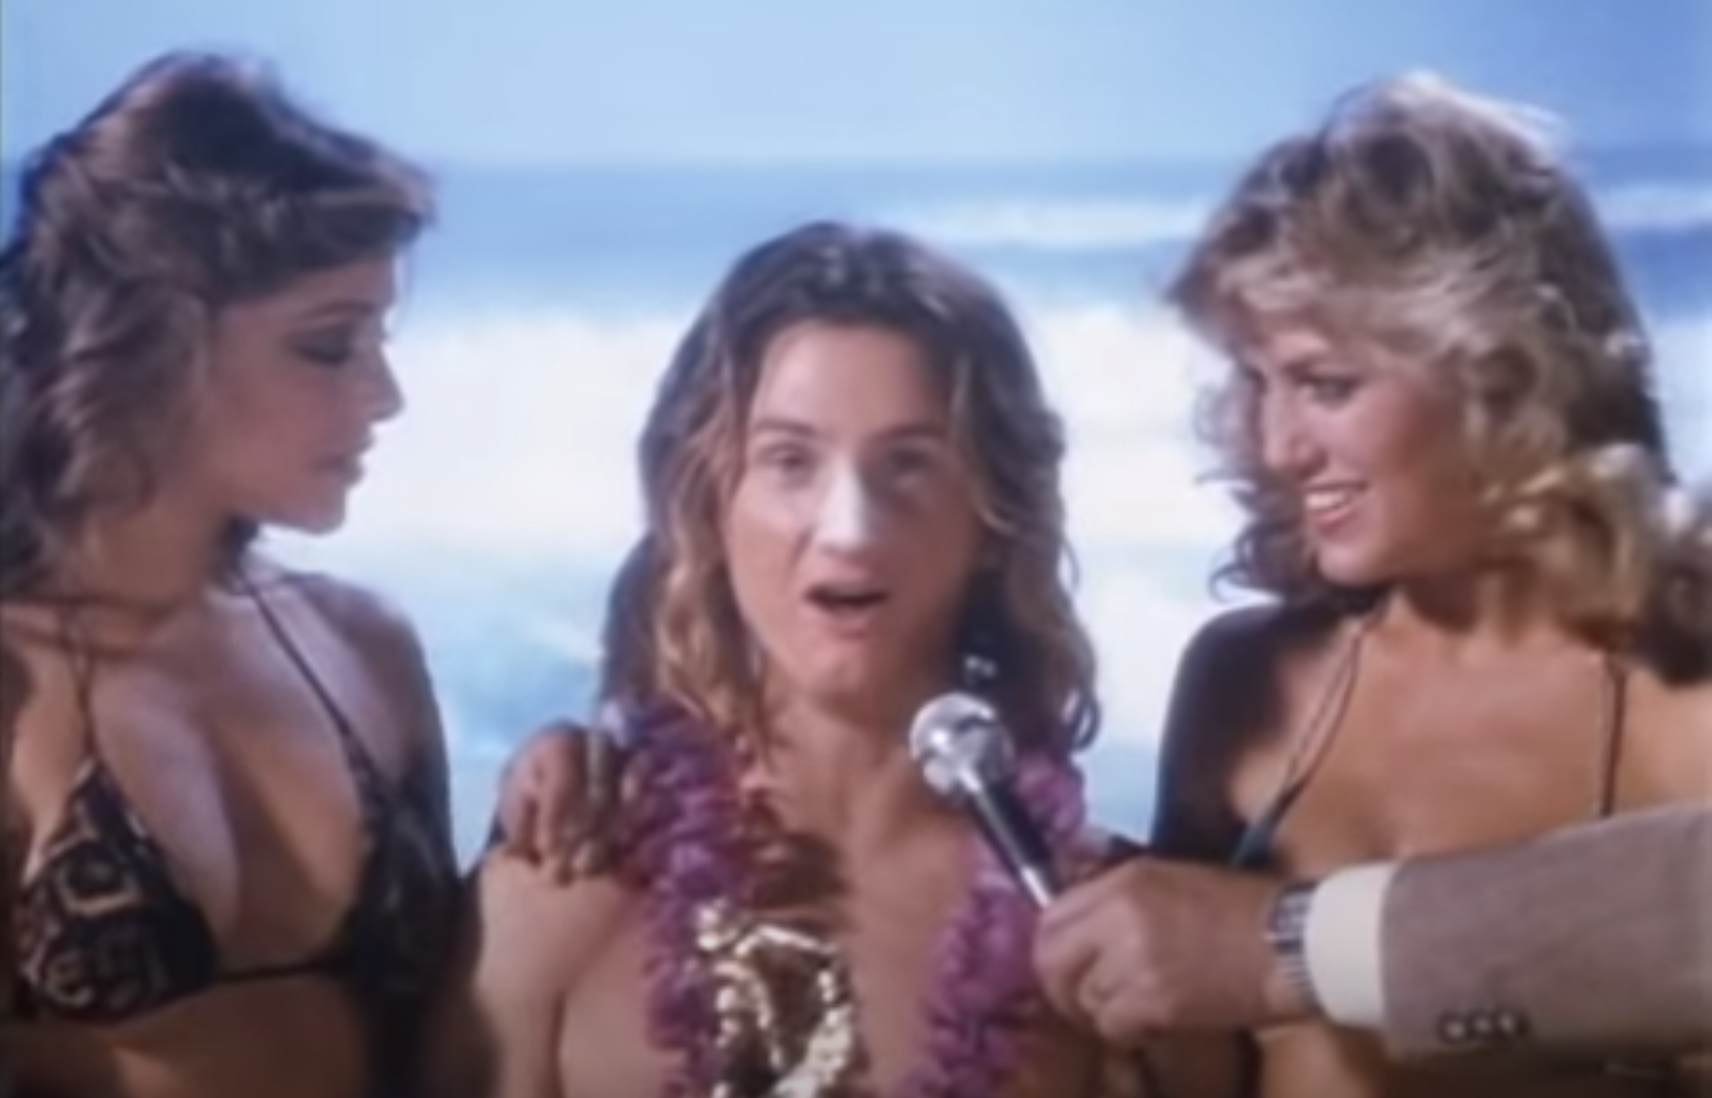 Spicoli at the beach with two women